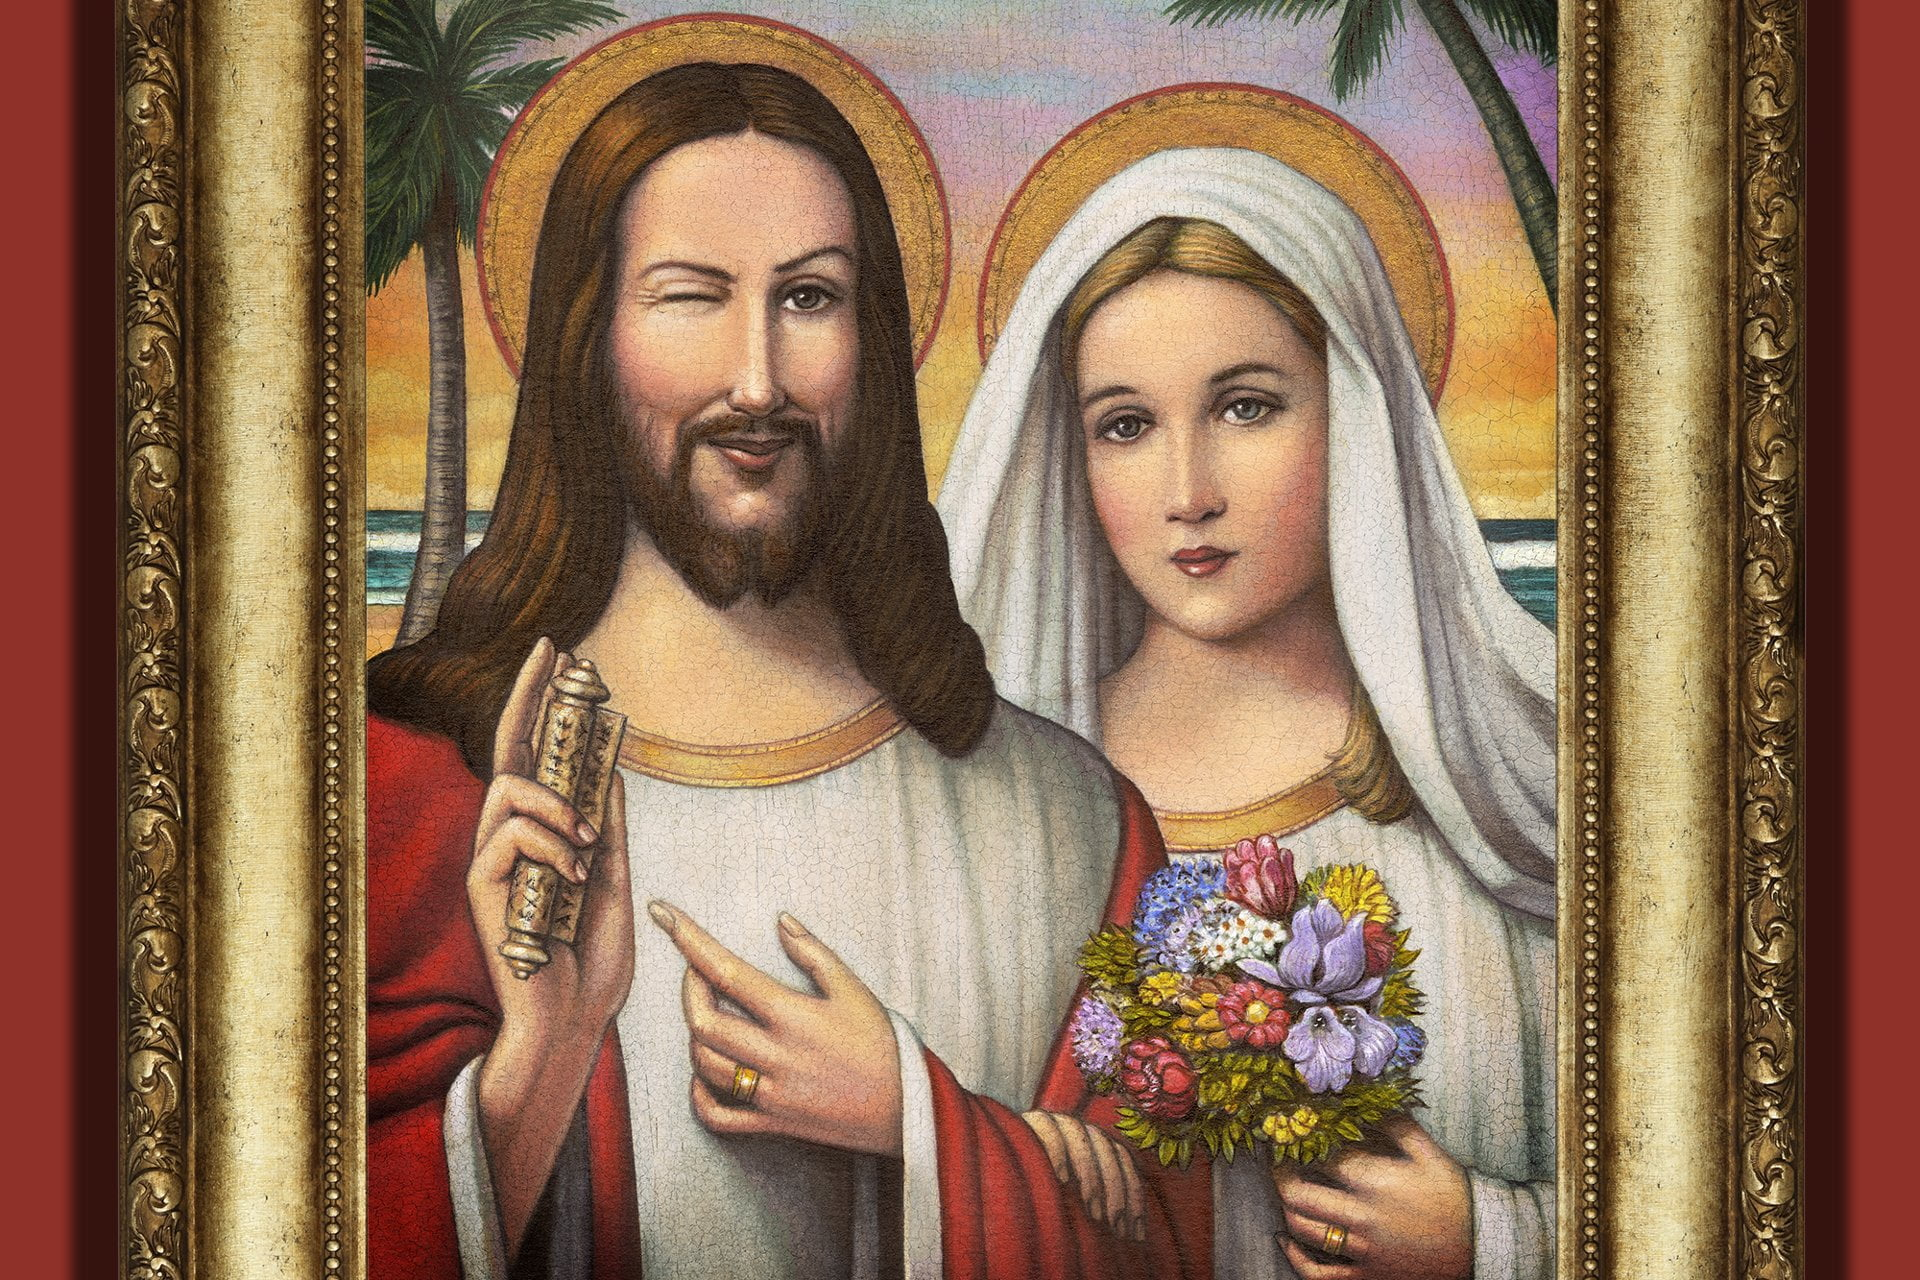 judas and jesus relationship with mary